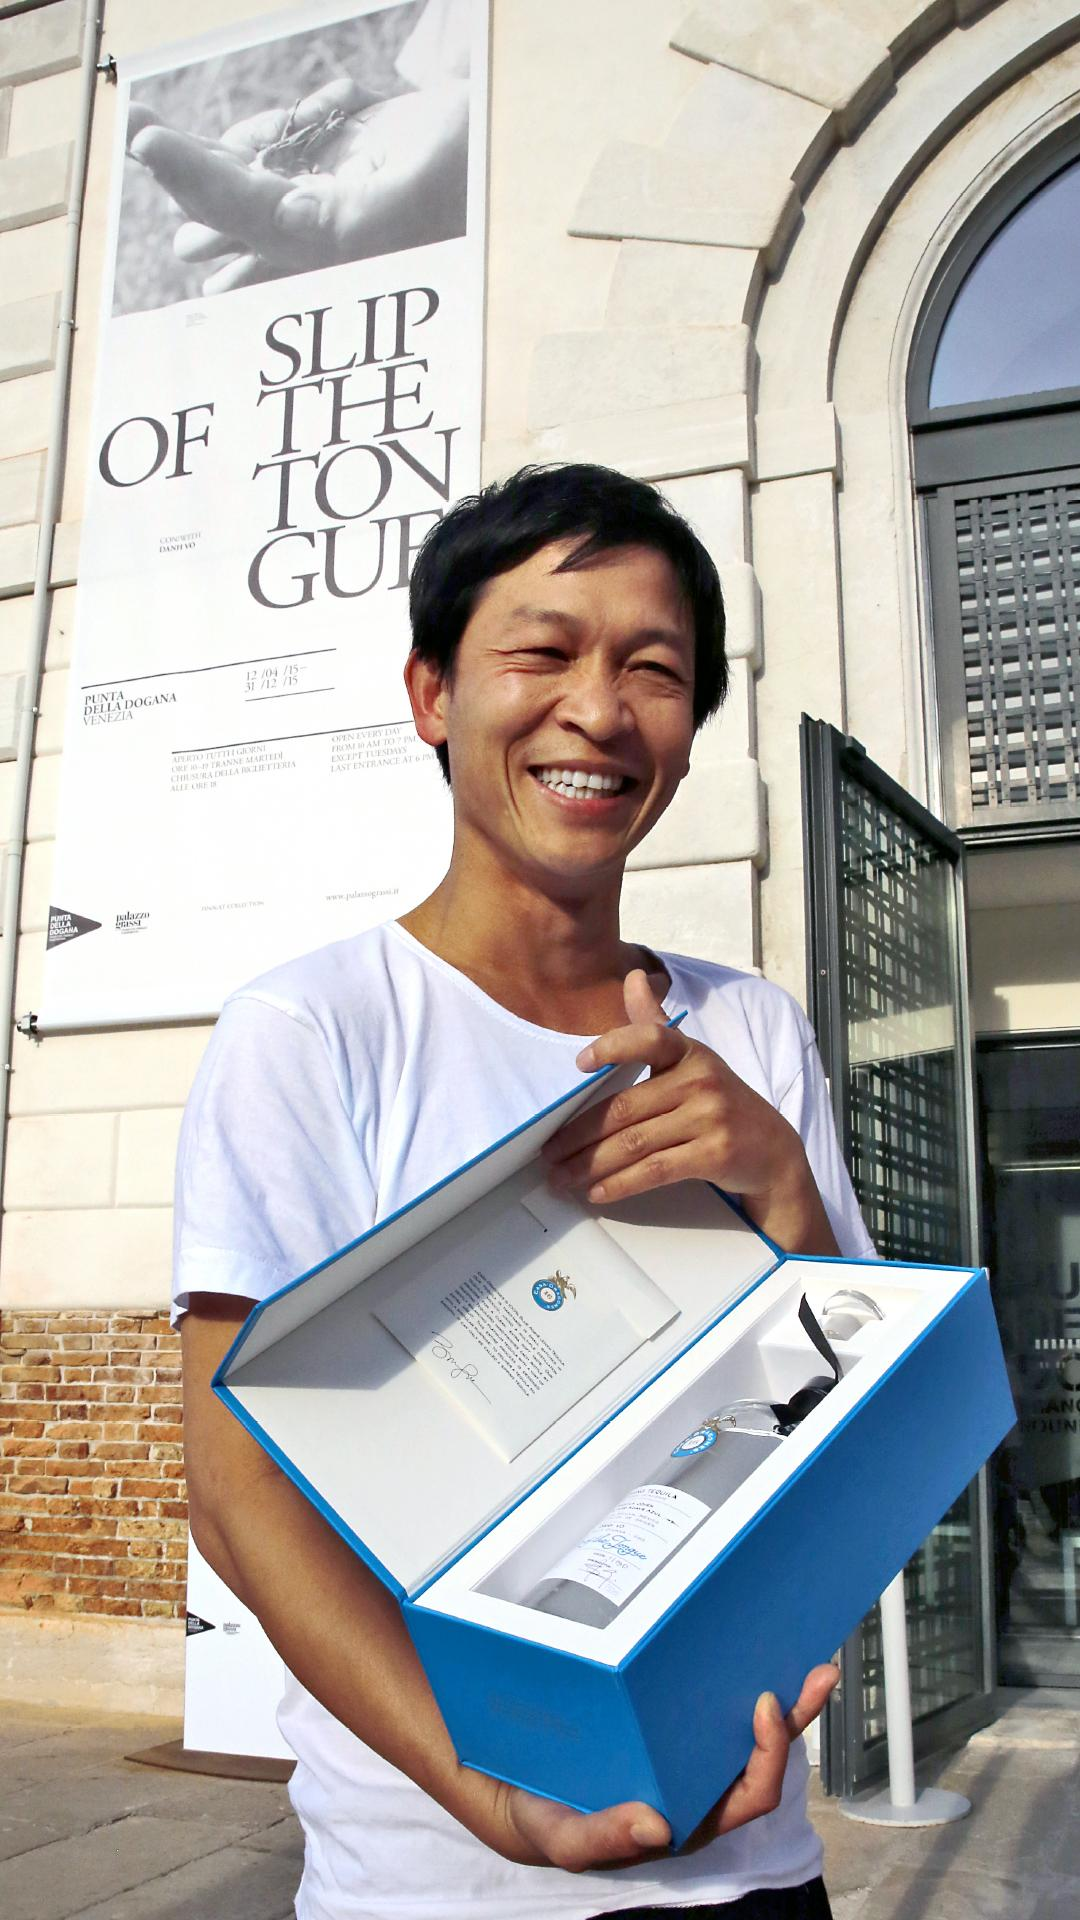 Danish Artist Danh Vo Holding Casa Dragones Collaboration Edition Bottle at Venice Biennale 2014